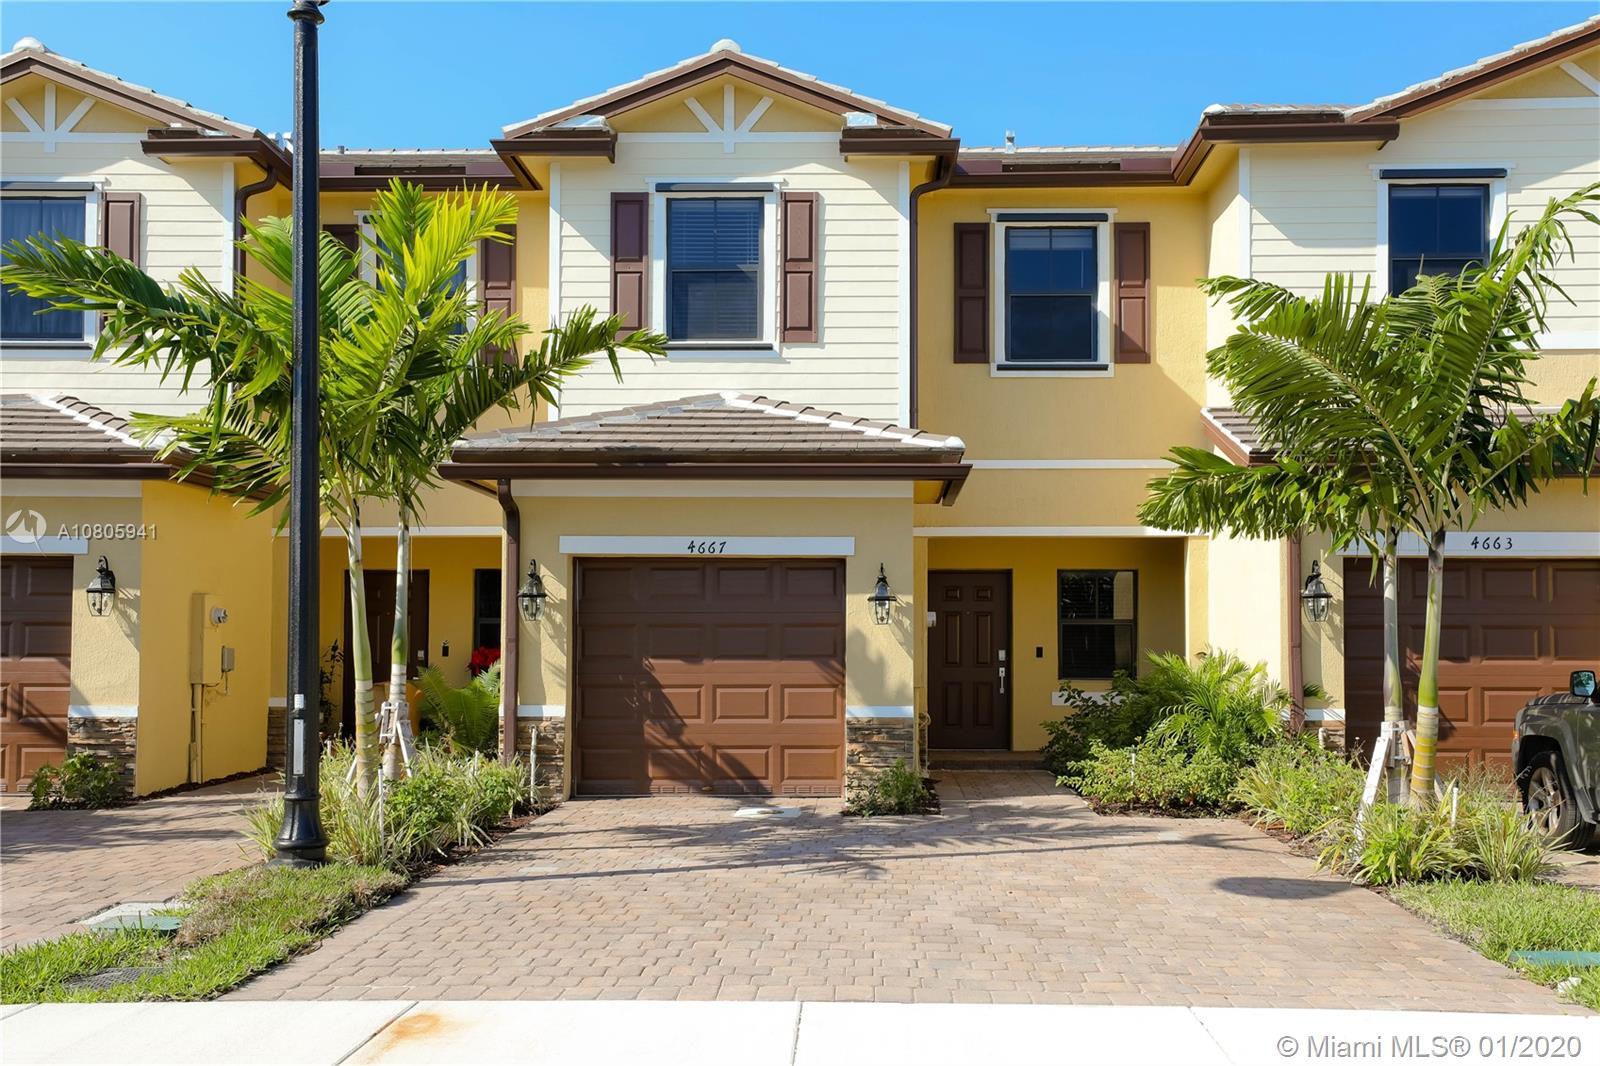 5800  Griffin Rd #4667 For Sale A10805941, FL